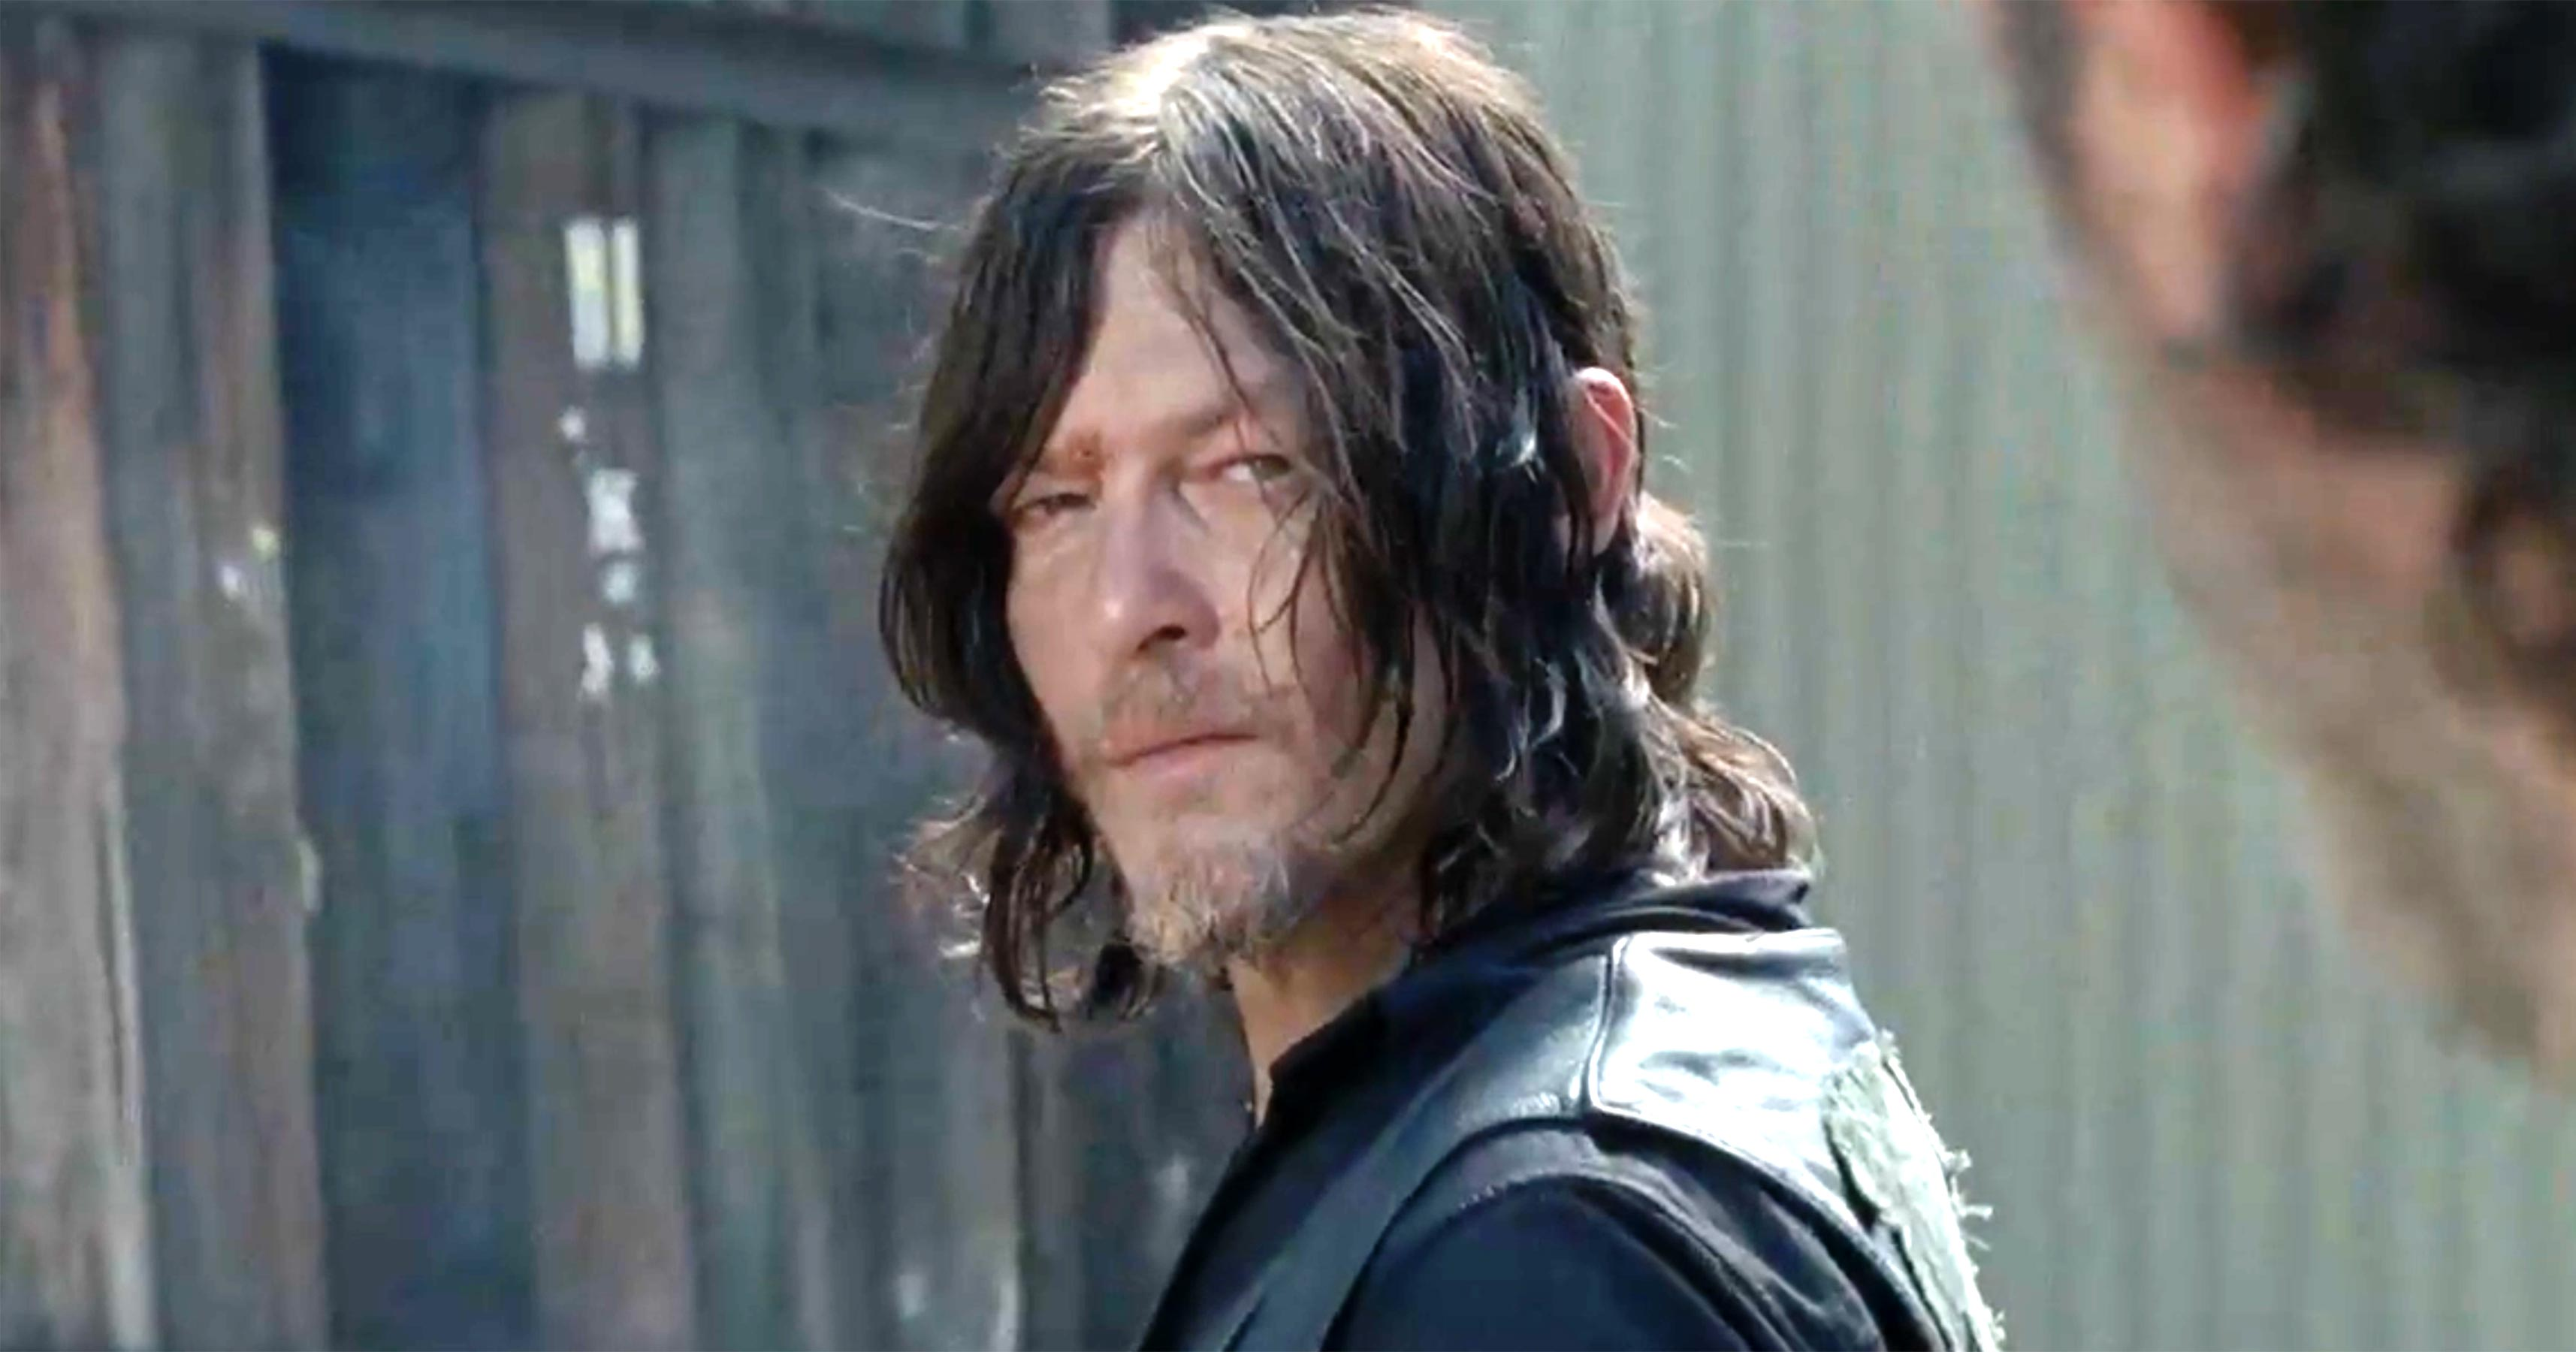 The Walking Dead finale and Fear premiere to air in theaters